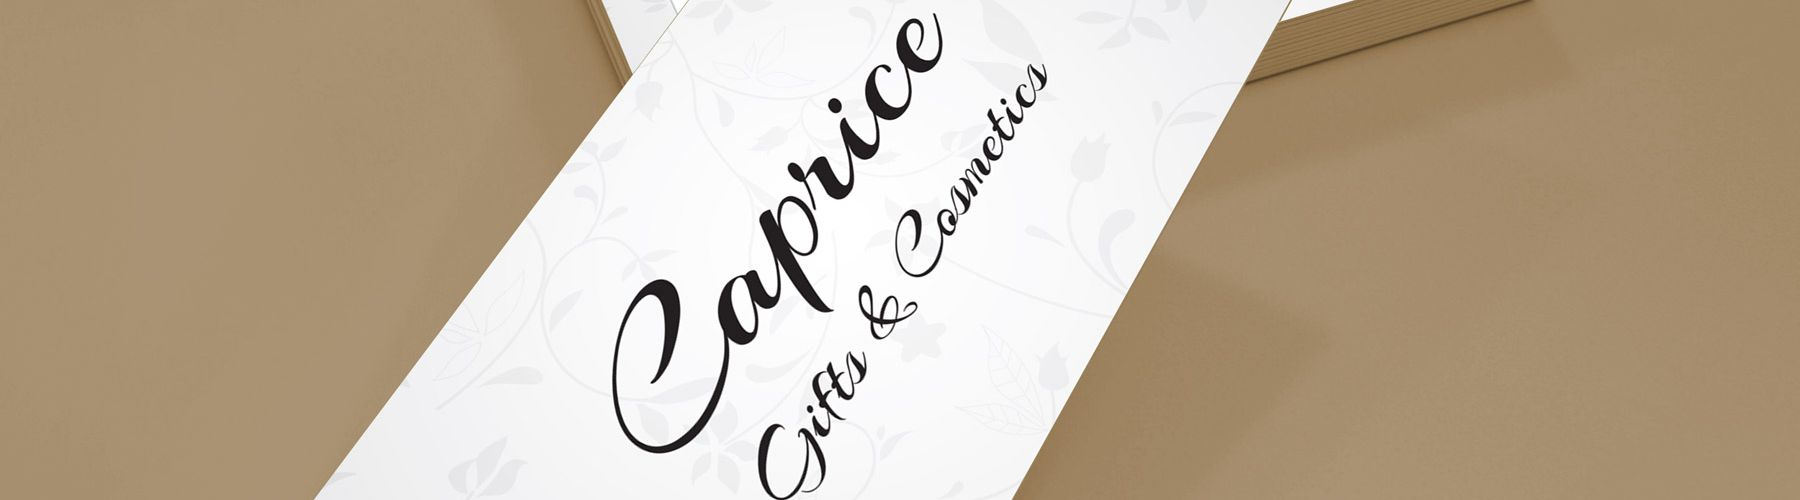 Caprice Gifts & Cosmetics